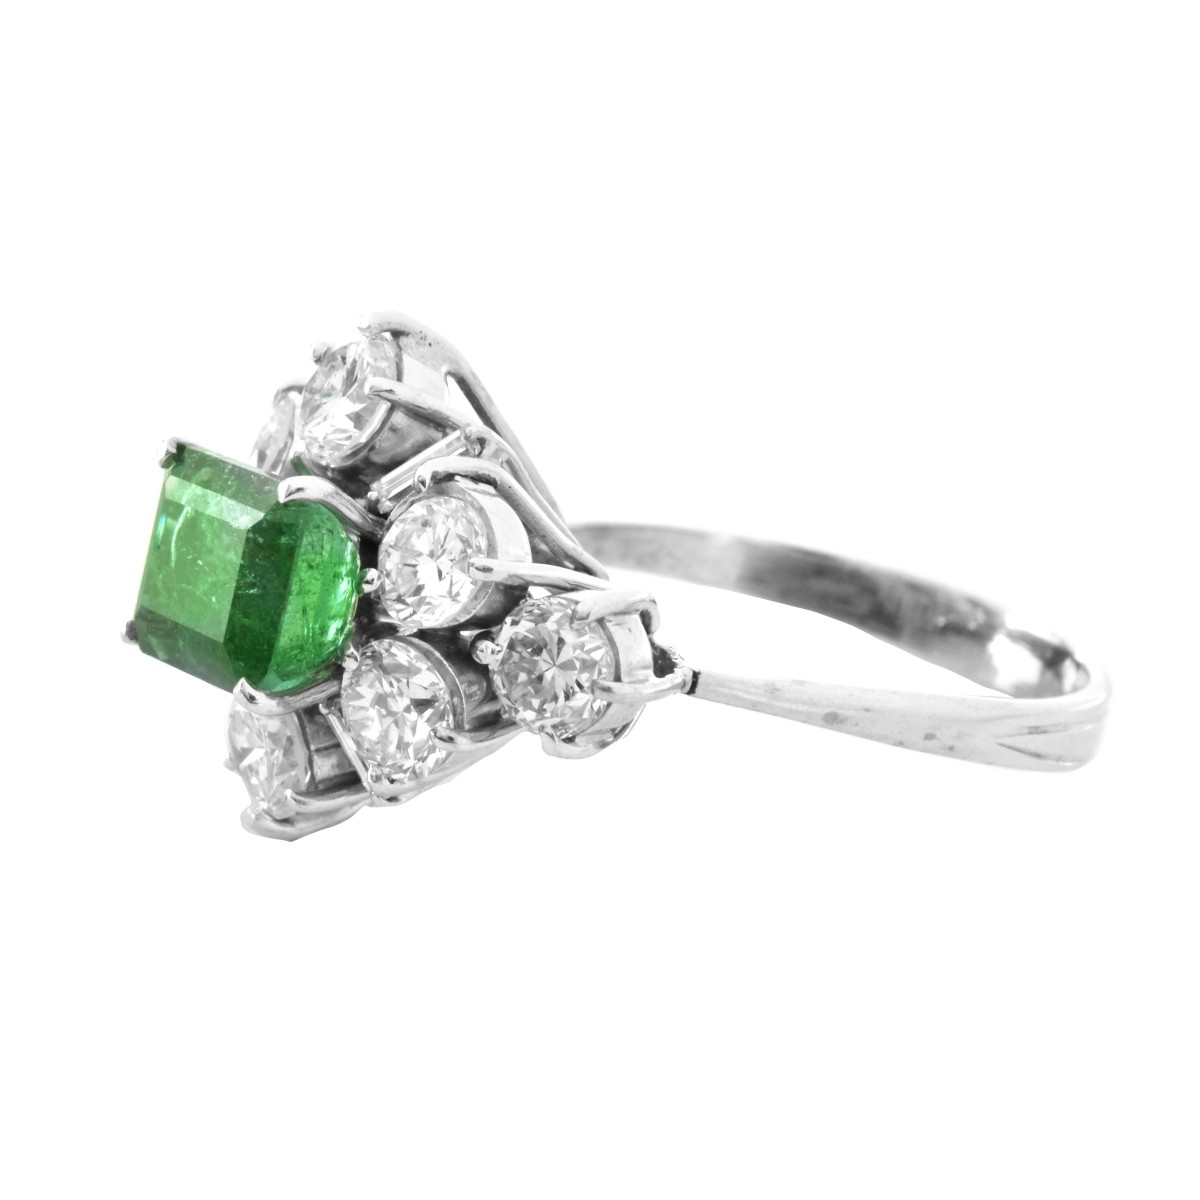 Diamond, Emerald and Platinum Ring